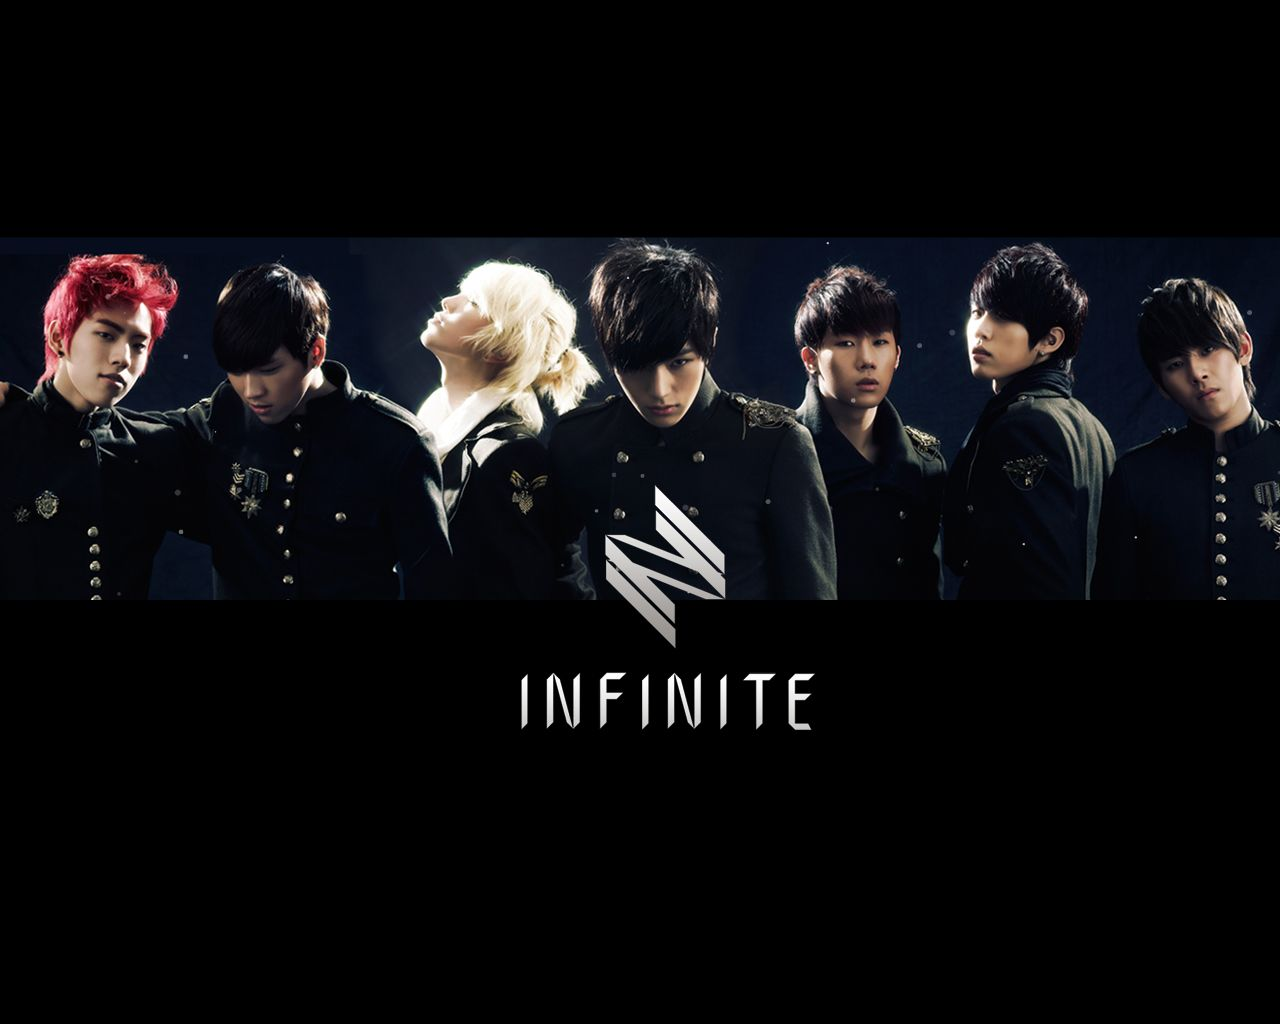 Awesome Kpop Images Hd wallpapers to download for free greenvirals